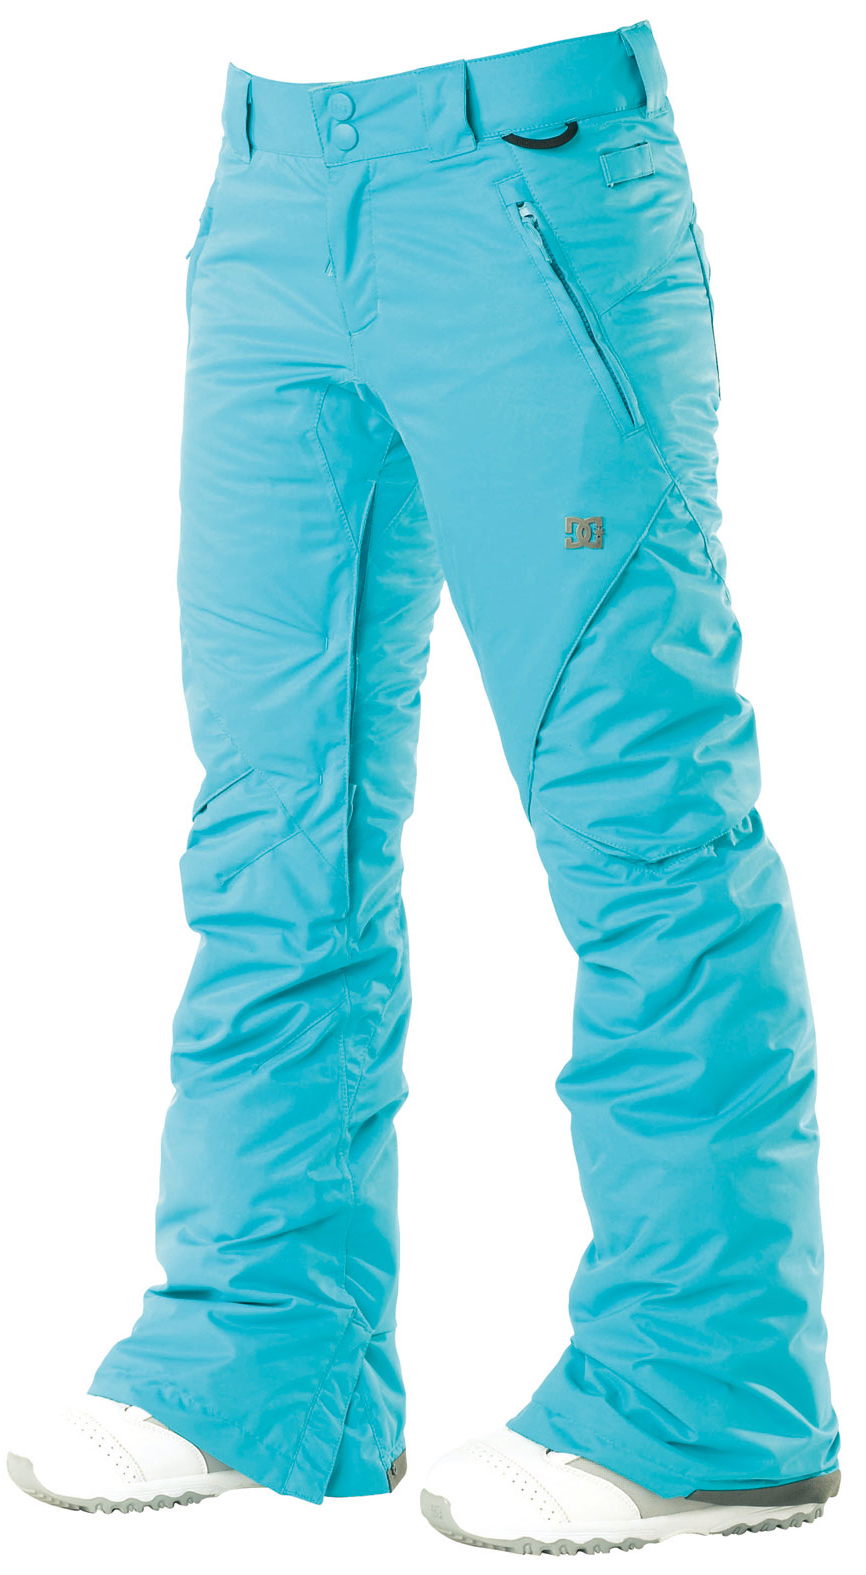 Snowboard With subtle cargo pockets, clean yet modern design, the ace pant is filled with all of dc's standard features. The added insulation will keep you warm in the coldest of climates. Available in both standard and tailored fits.Key Features of the DC Ace S Snowboard Pants: 5,000mm waterproof 5,000g breathability Fit: skinny 100% polyester micro twill midweight Critically taped seams 40g polyinsulation Taffeta lining Mesh lined venting Shant control Boot gaiter Snapped hem boot gusset Lift pass hook - $83.95